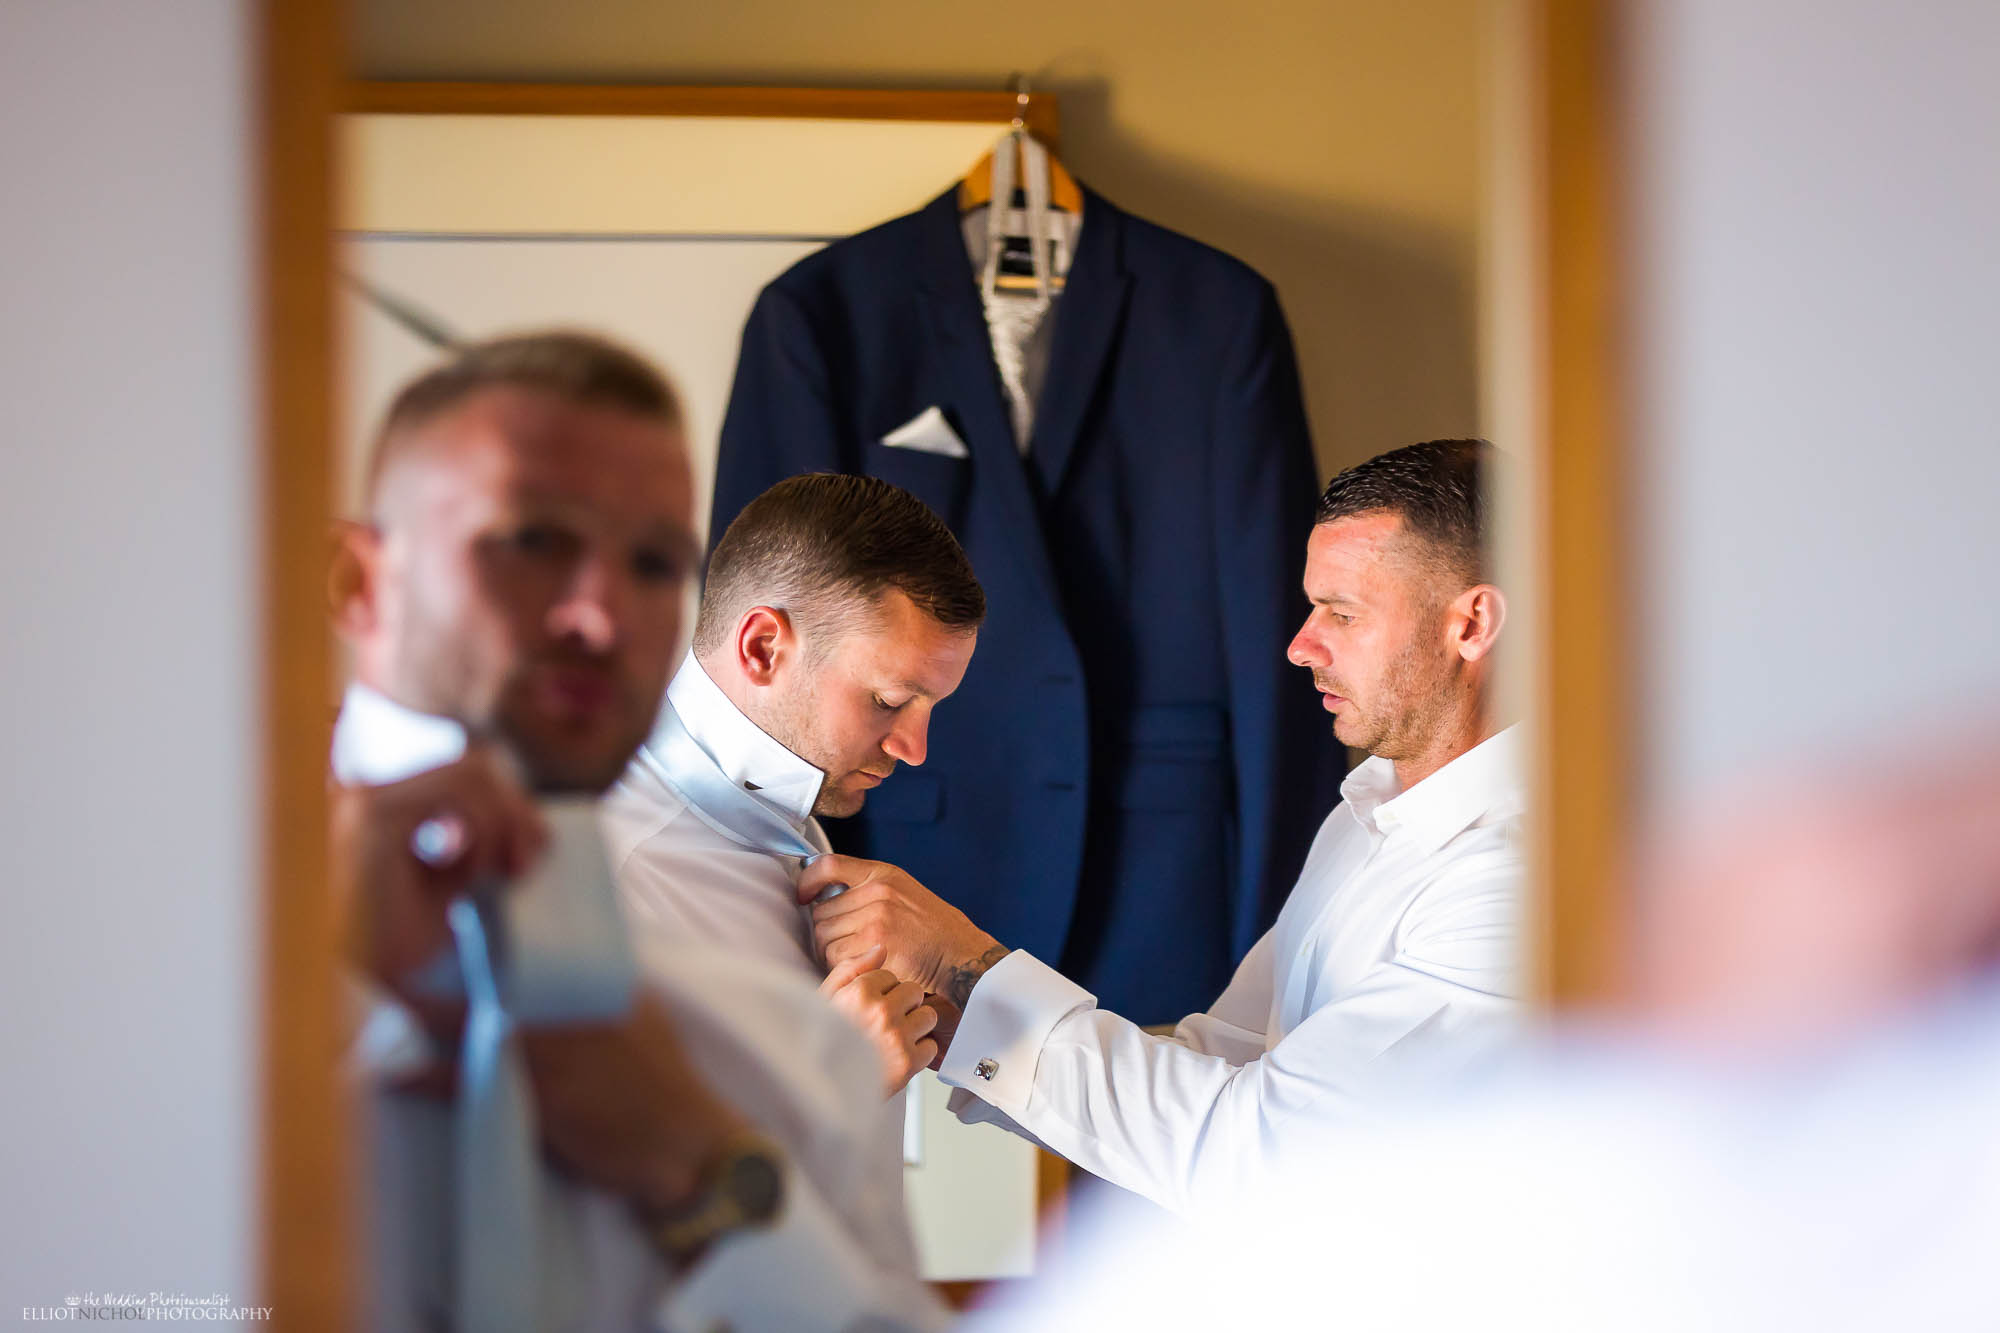 Navy blue wedding suit hanging up behind the groom helping his groomsmen get ready for the wedding.